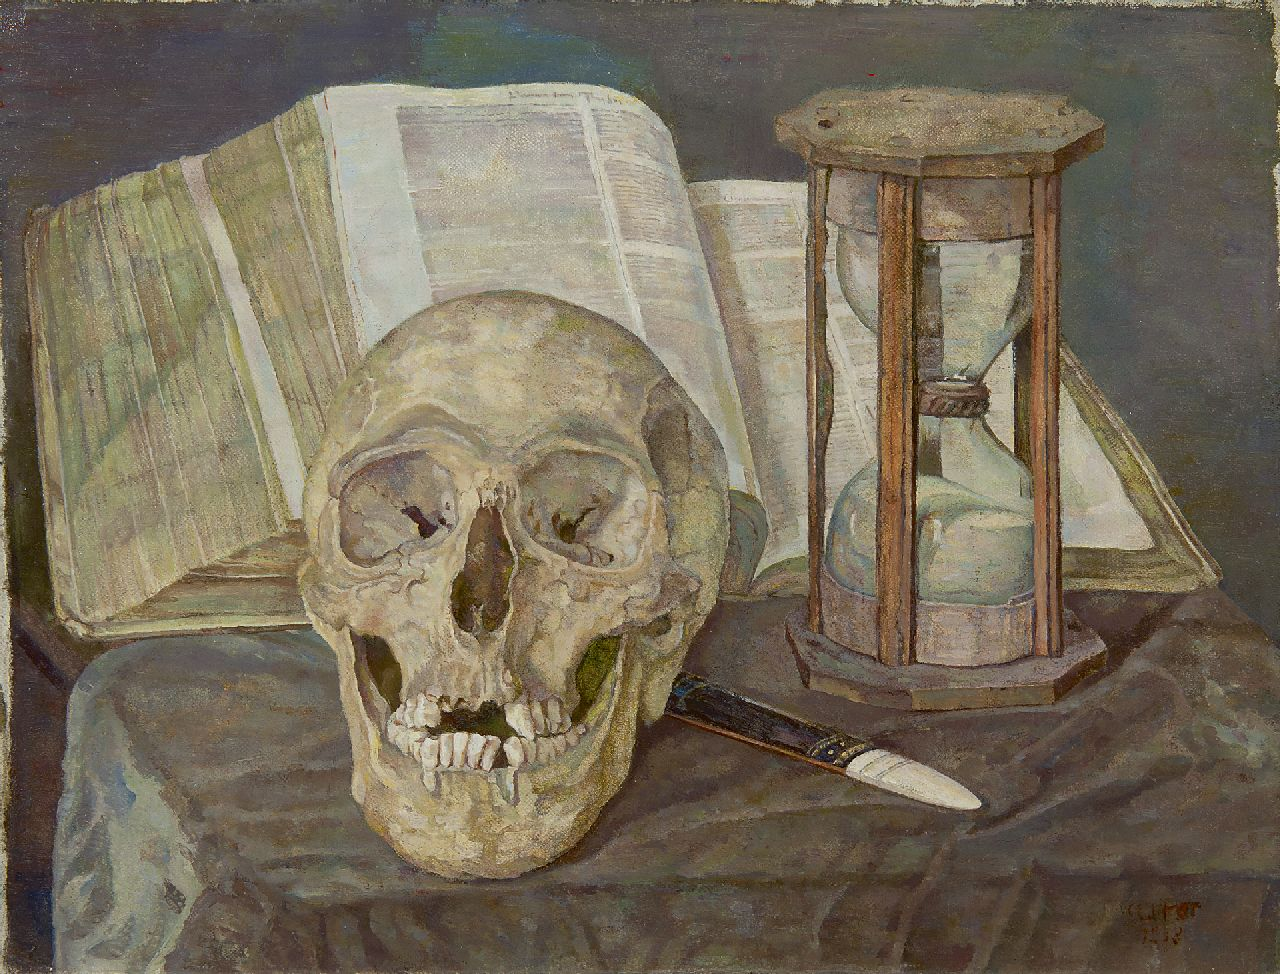 Corrie Pabst | Vanitas still life, oil on canvas, 30.5 x 40.2 cm, signed l.r. and dated 1908